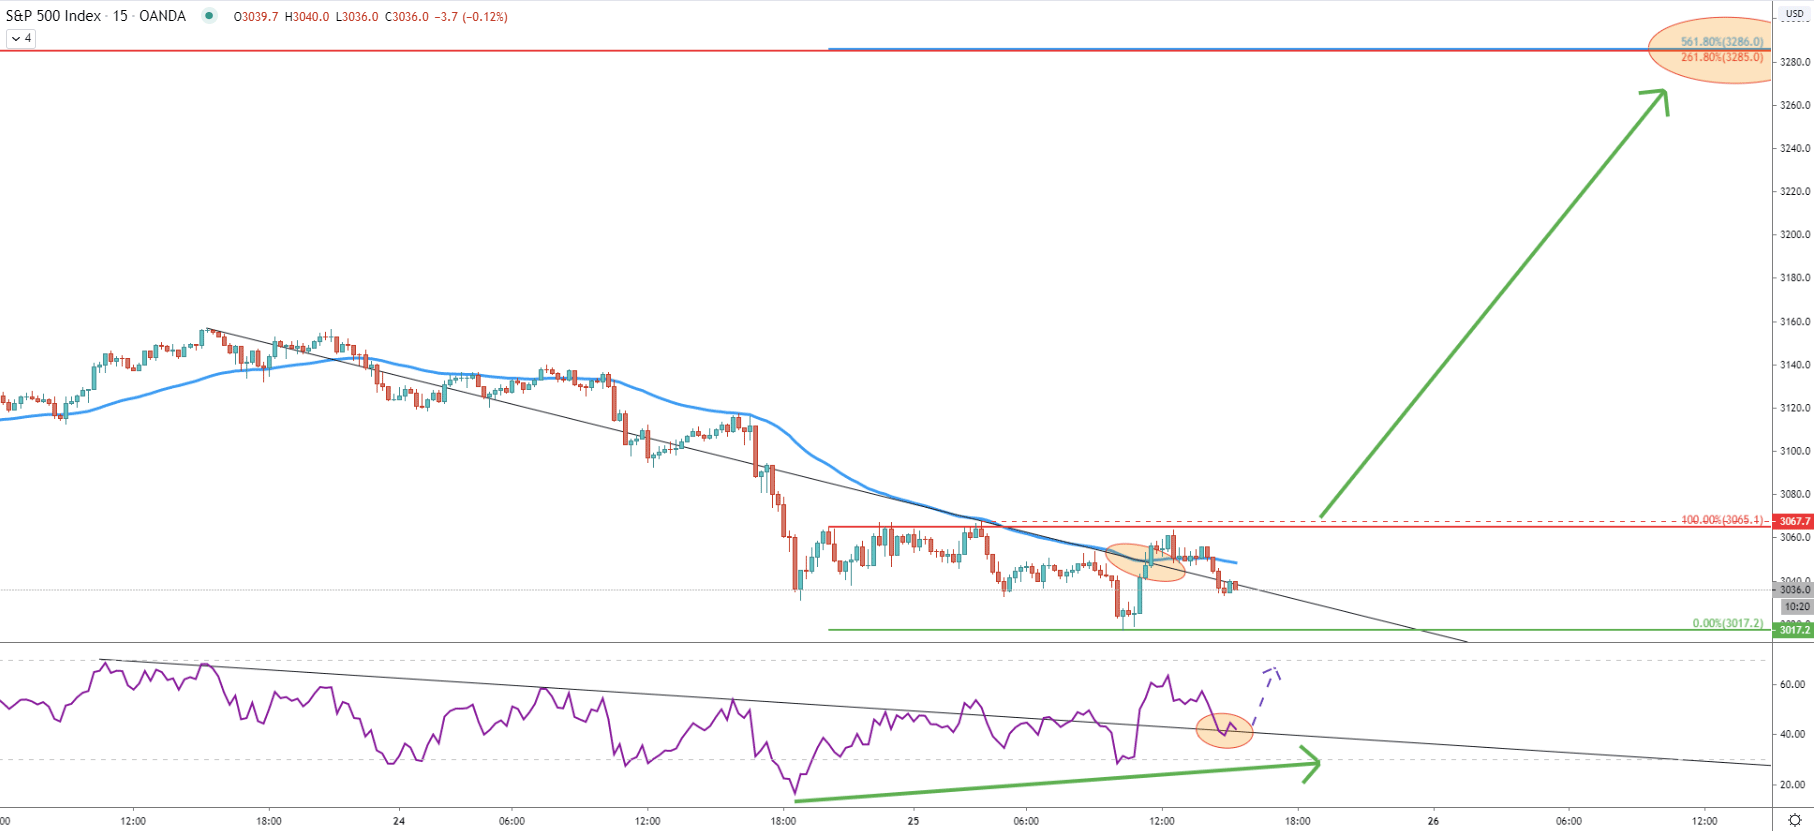 S&P500 15-Minute Technical Analysis 25 June 2020